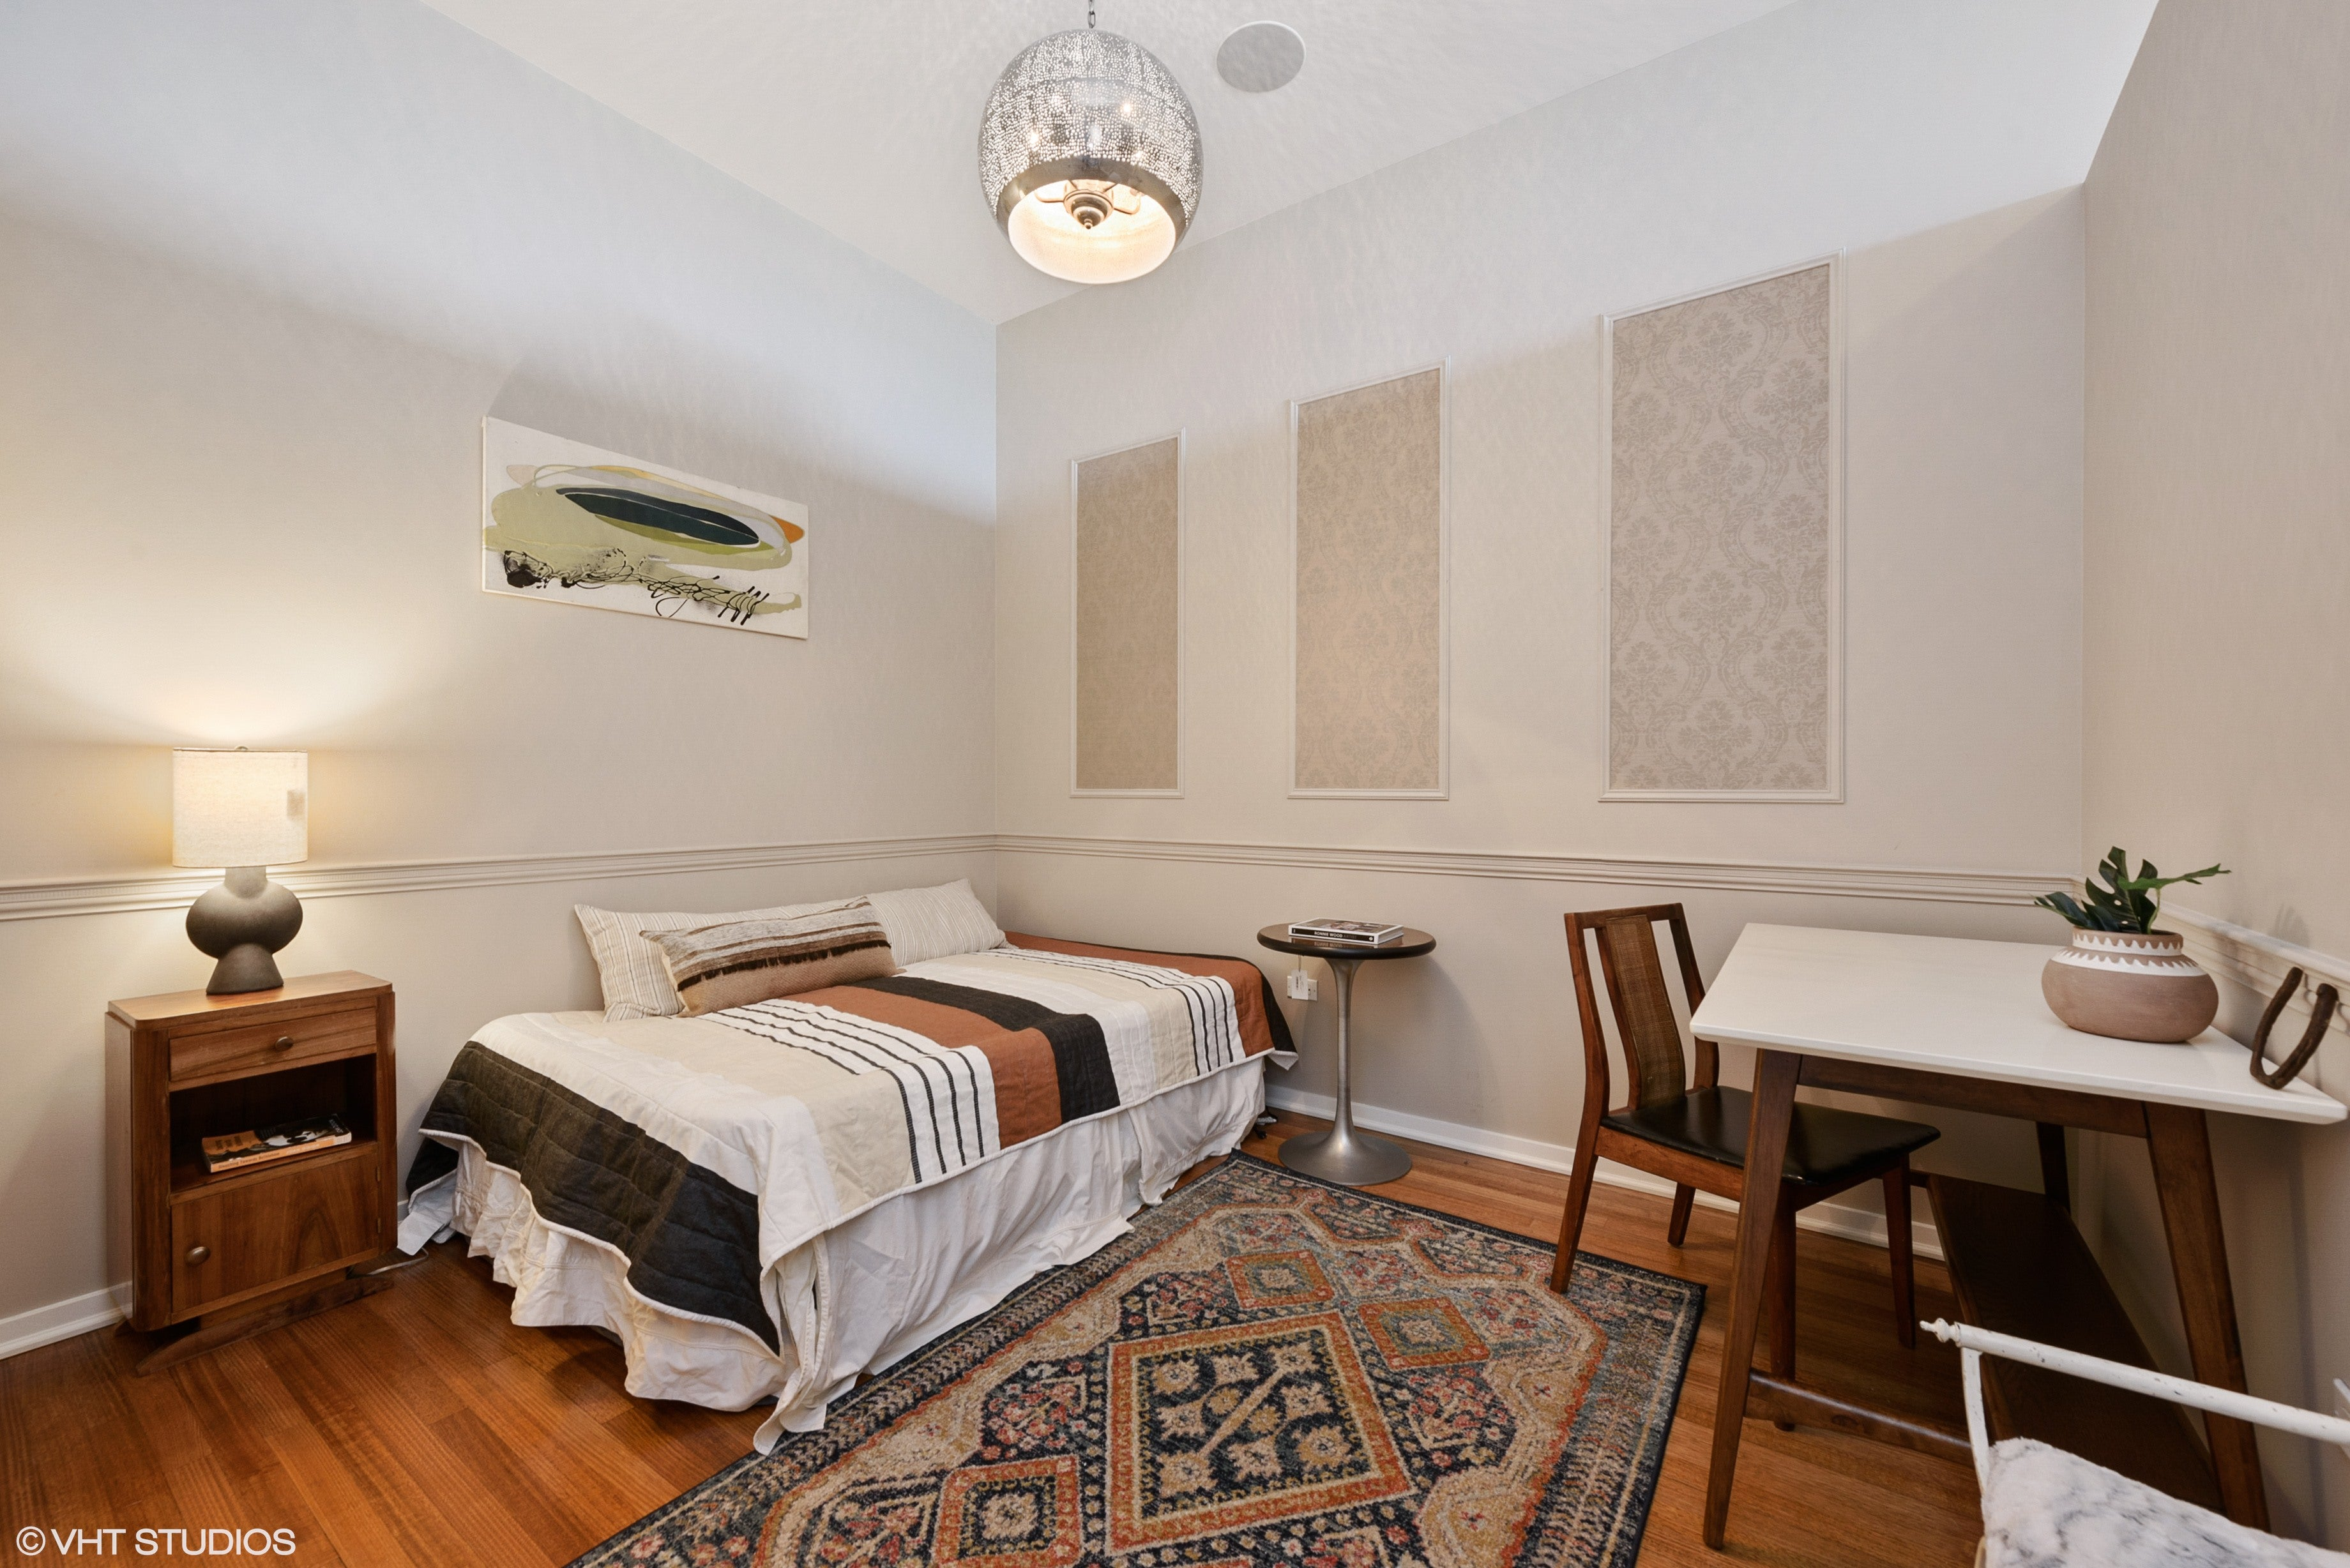 Eskell's luxury homes stagings like this River North apartment are an essential service for homes for sale in Chicago.